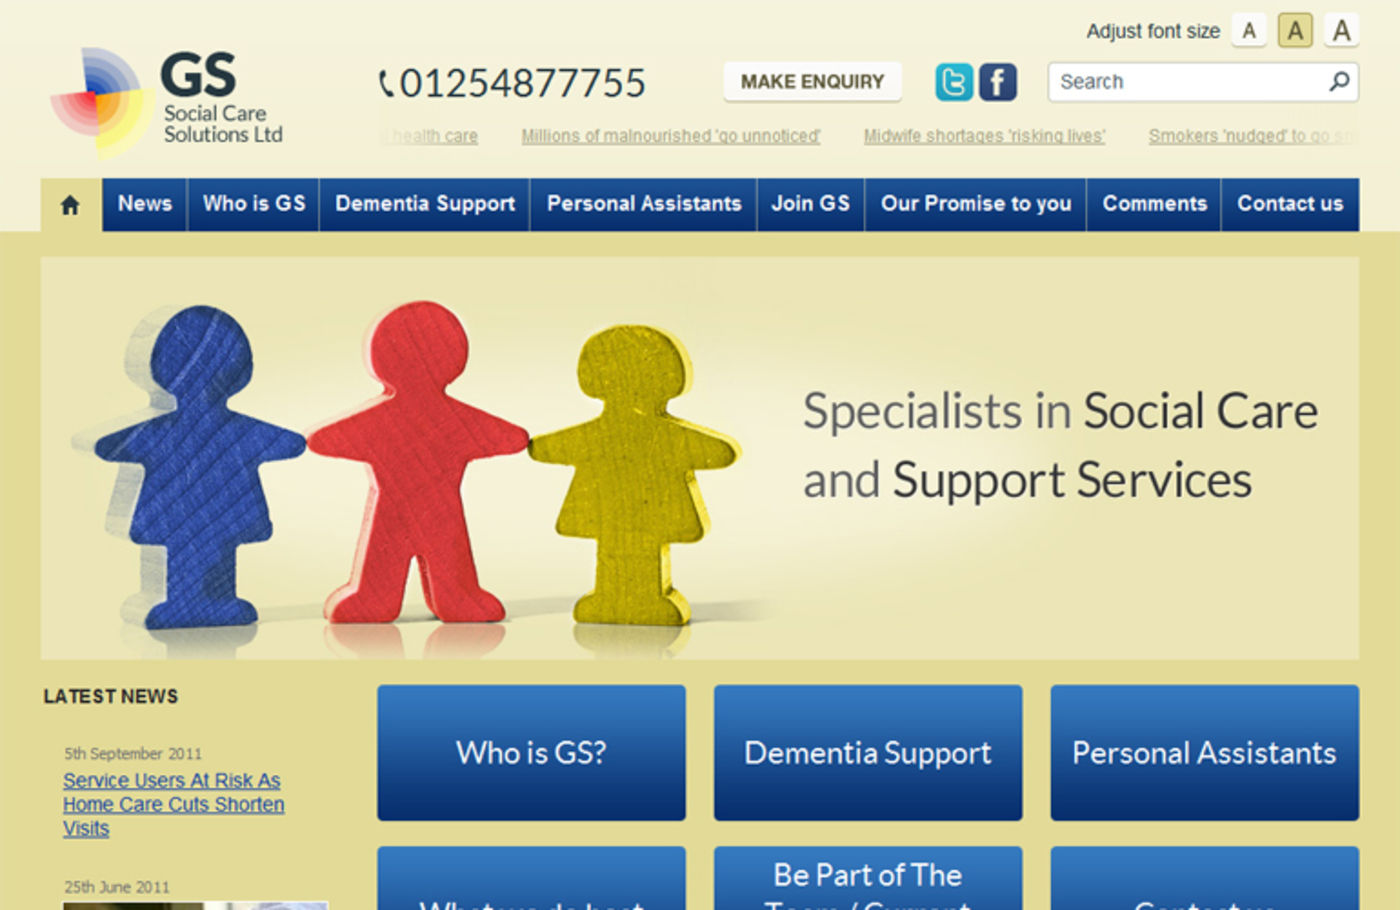 GS Social Care Solutions Ltd Homepage header